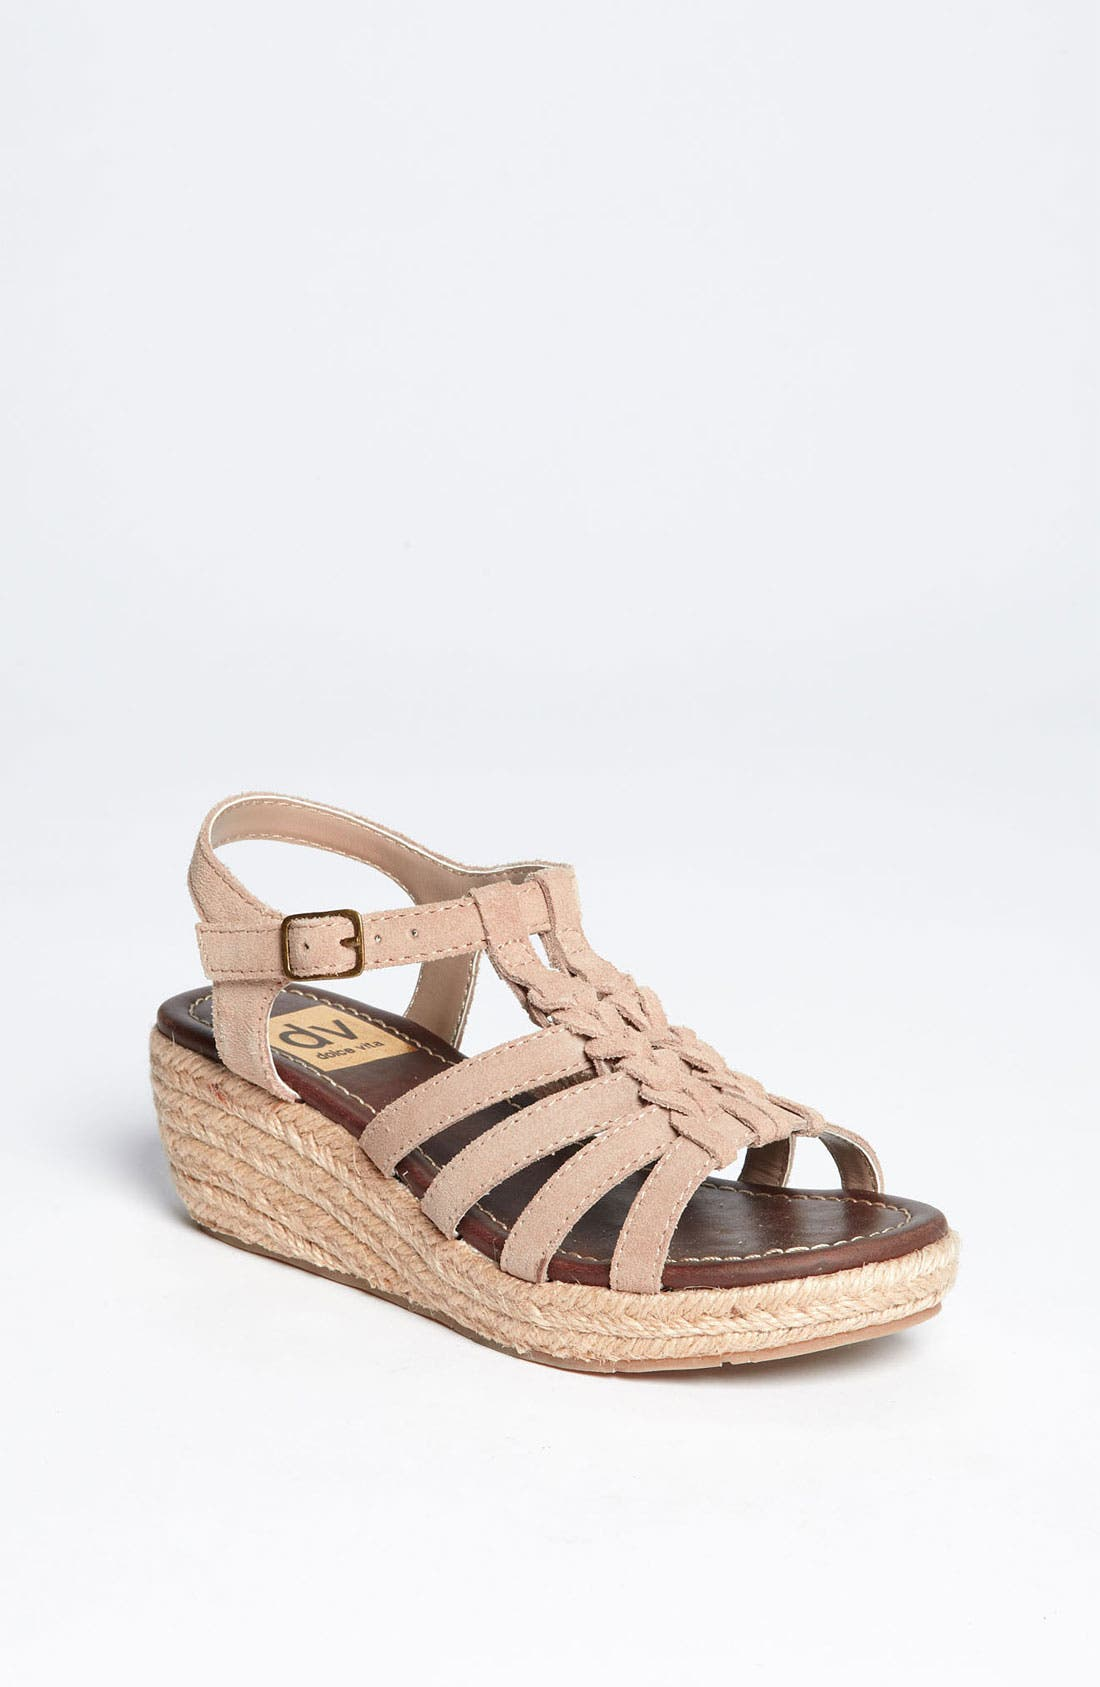 Main Image - DV by Dolce Vita 'Taz' Sandal (Toddler, Little Kid & Big Kid)